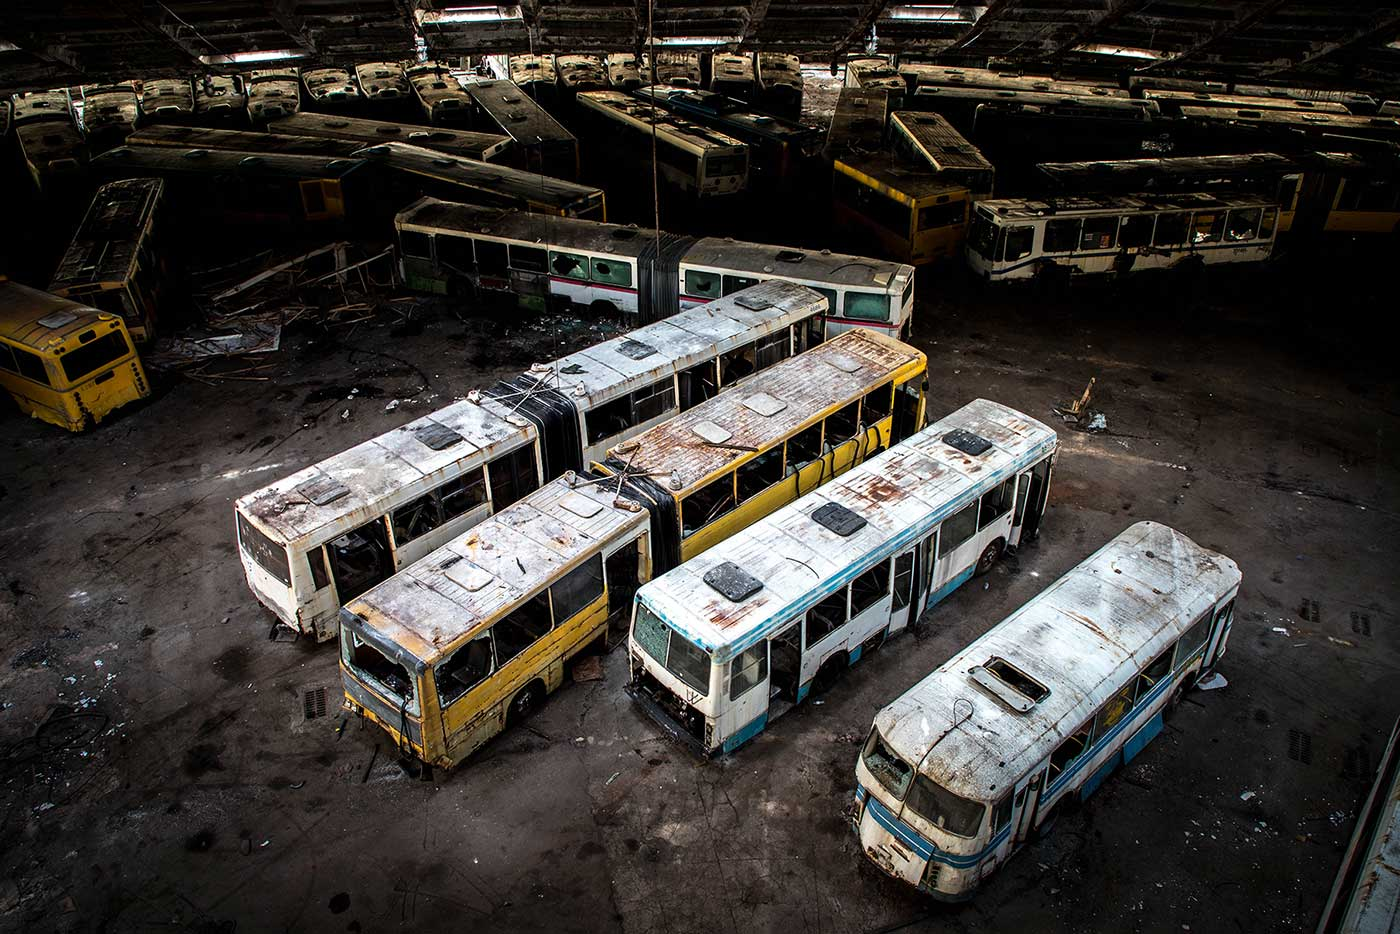 From above, the scale of Autobus Park №7 begins to sink in. From this distance the hundreds of abandoned buses look almost like toys. Autobus Park №7: the abandoned bus depot in Kyiv, Ukraine.